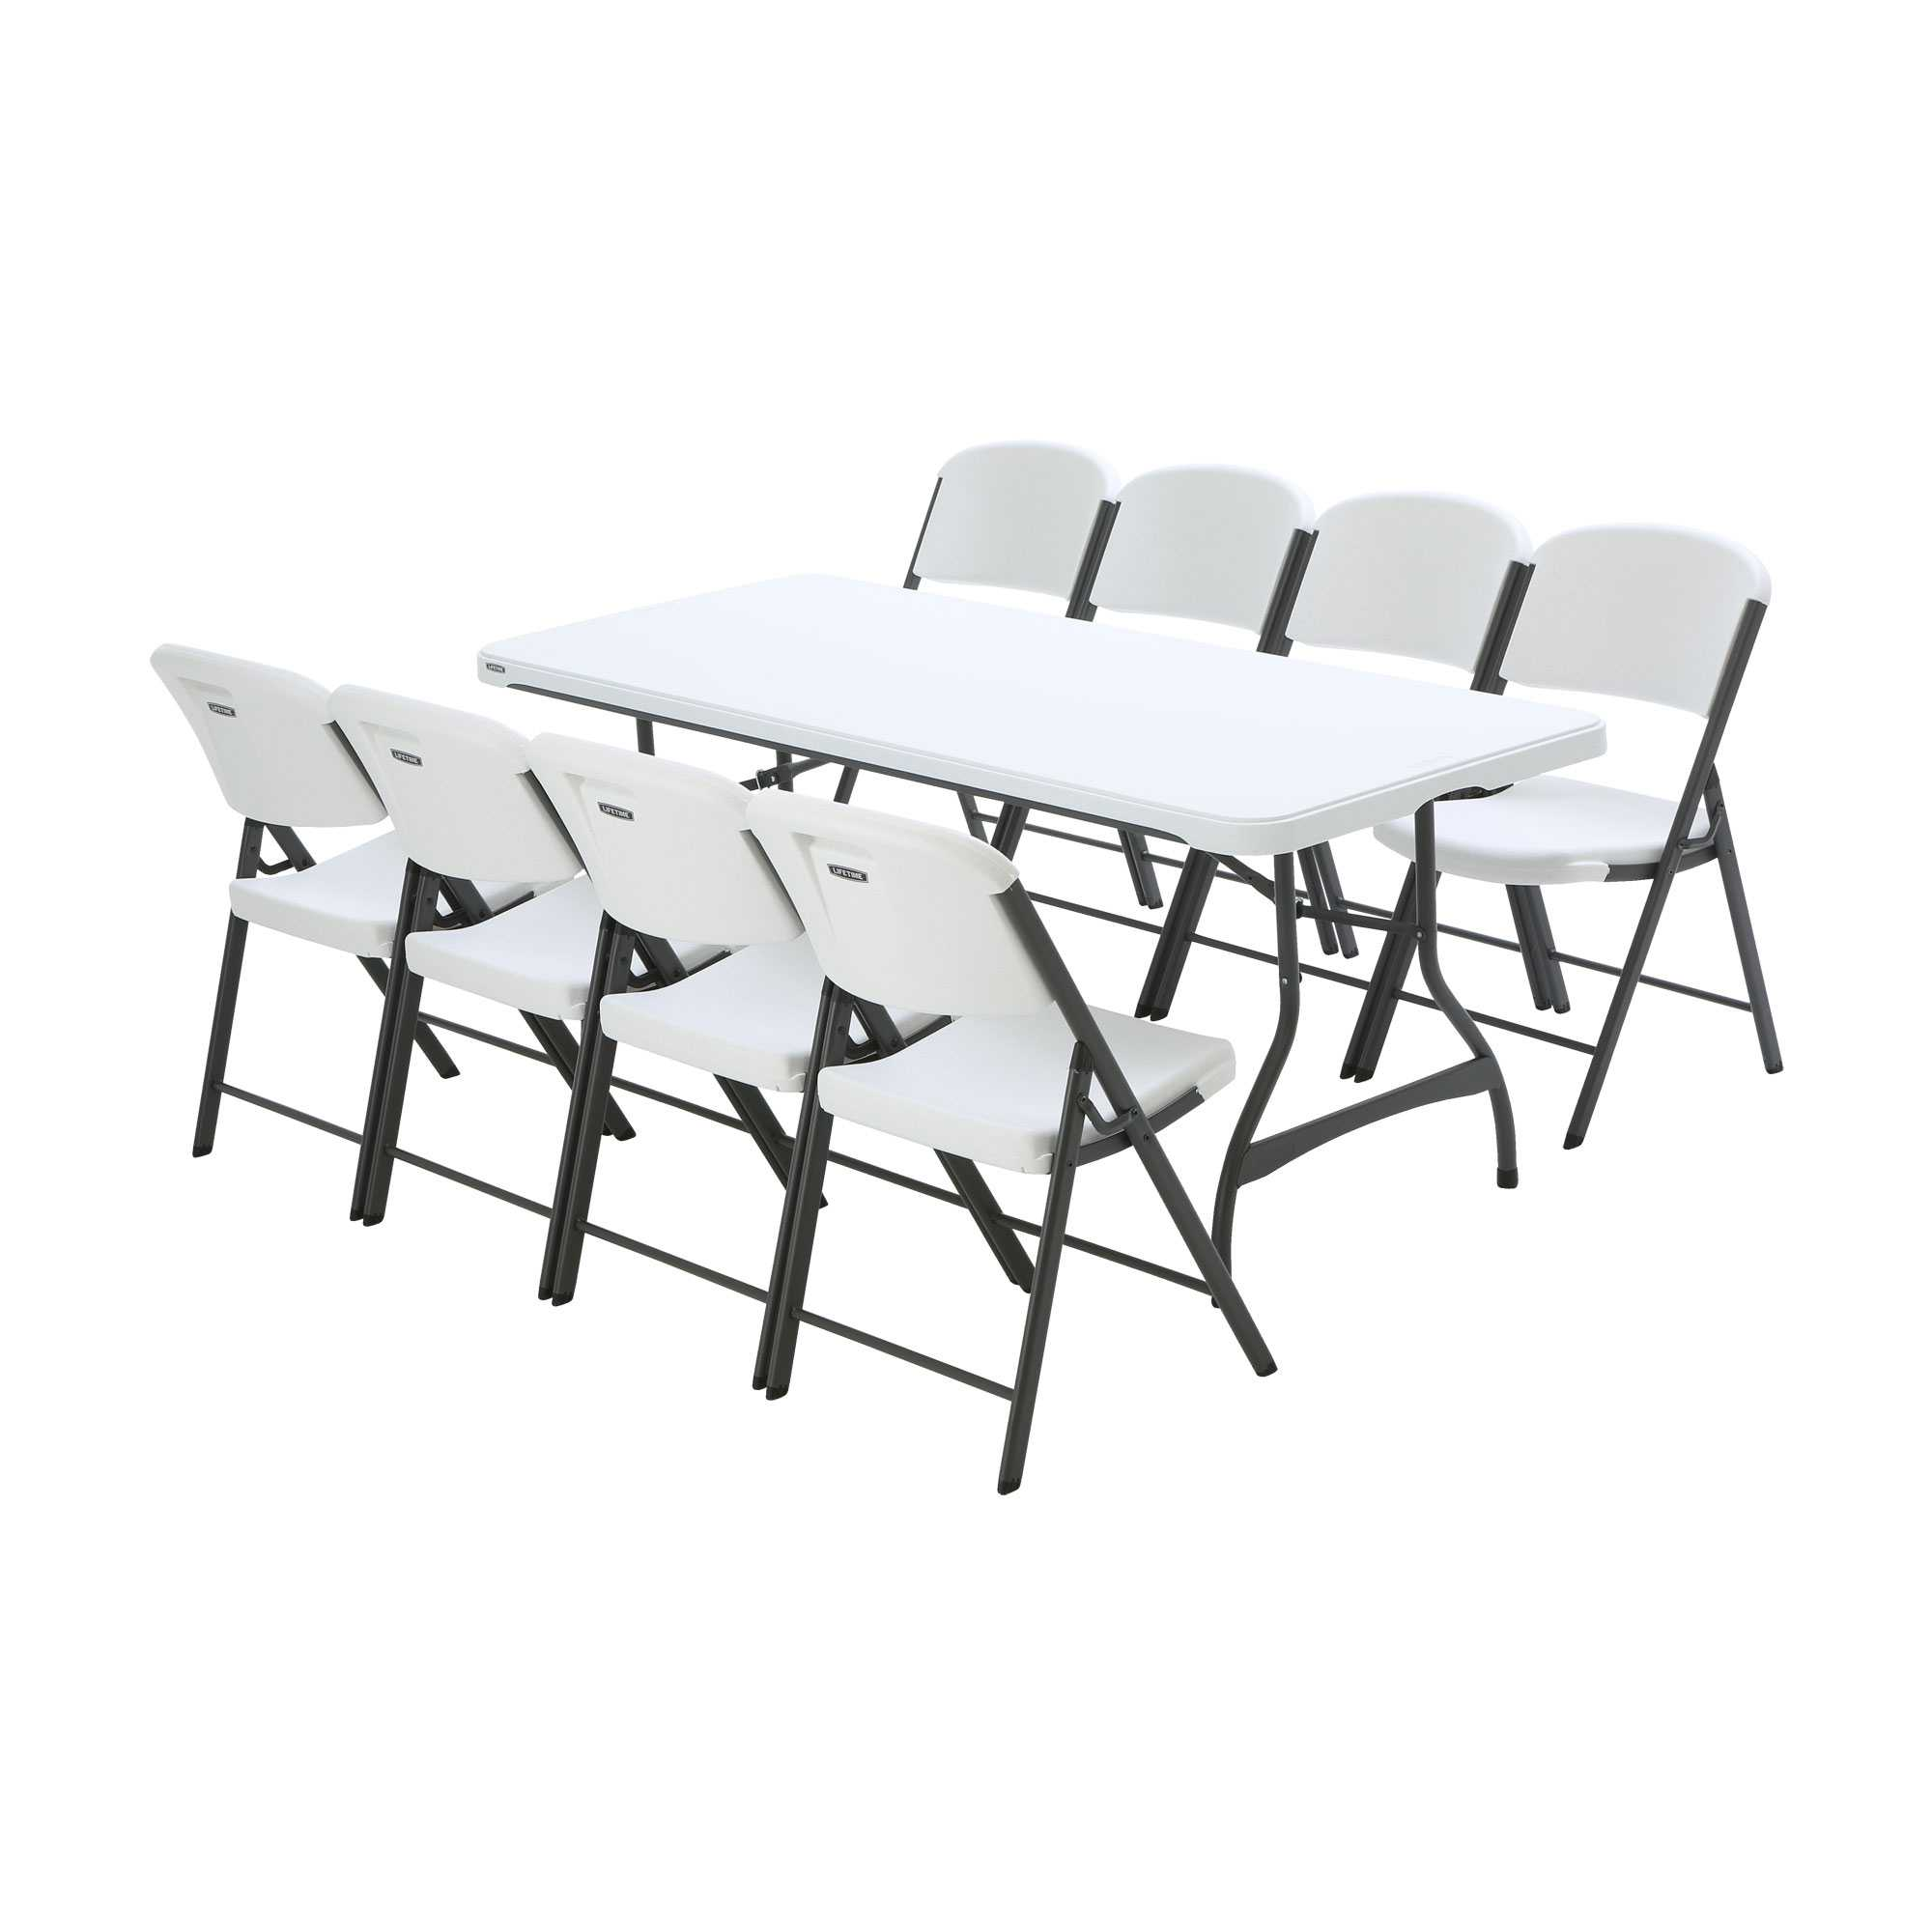 White Tables And Chairs: Lifetime 1 Table And 8 Chair Package On Sale With Fast